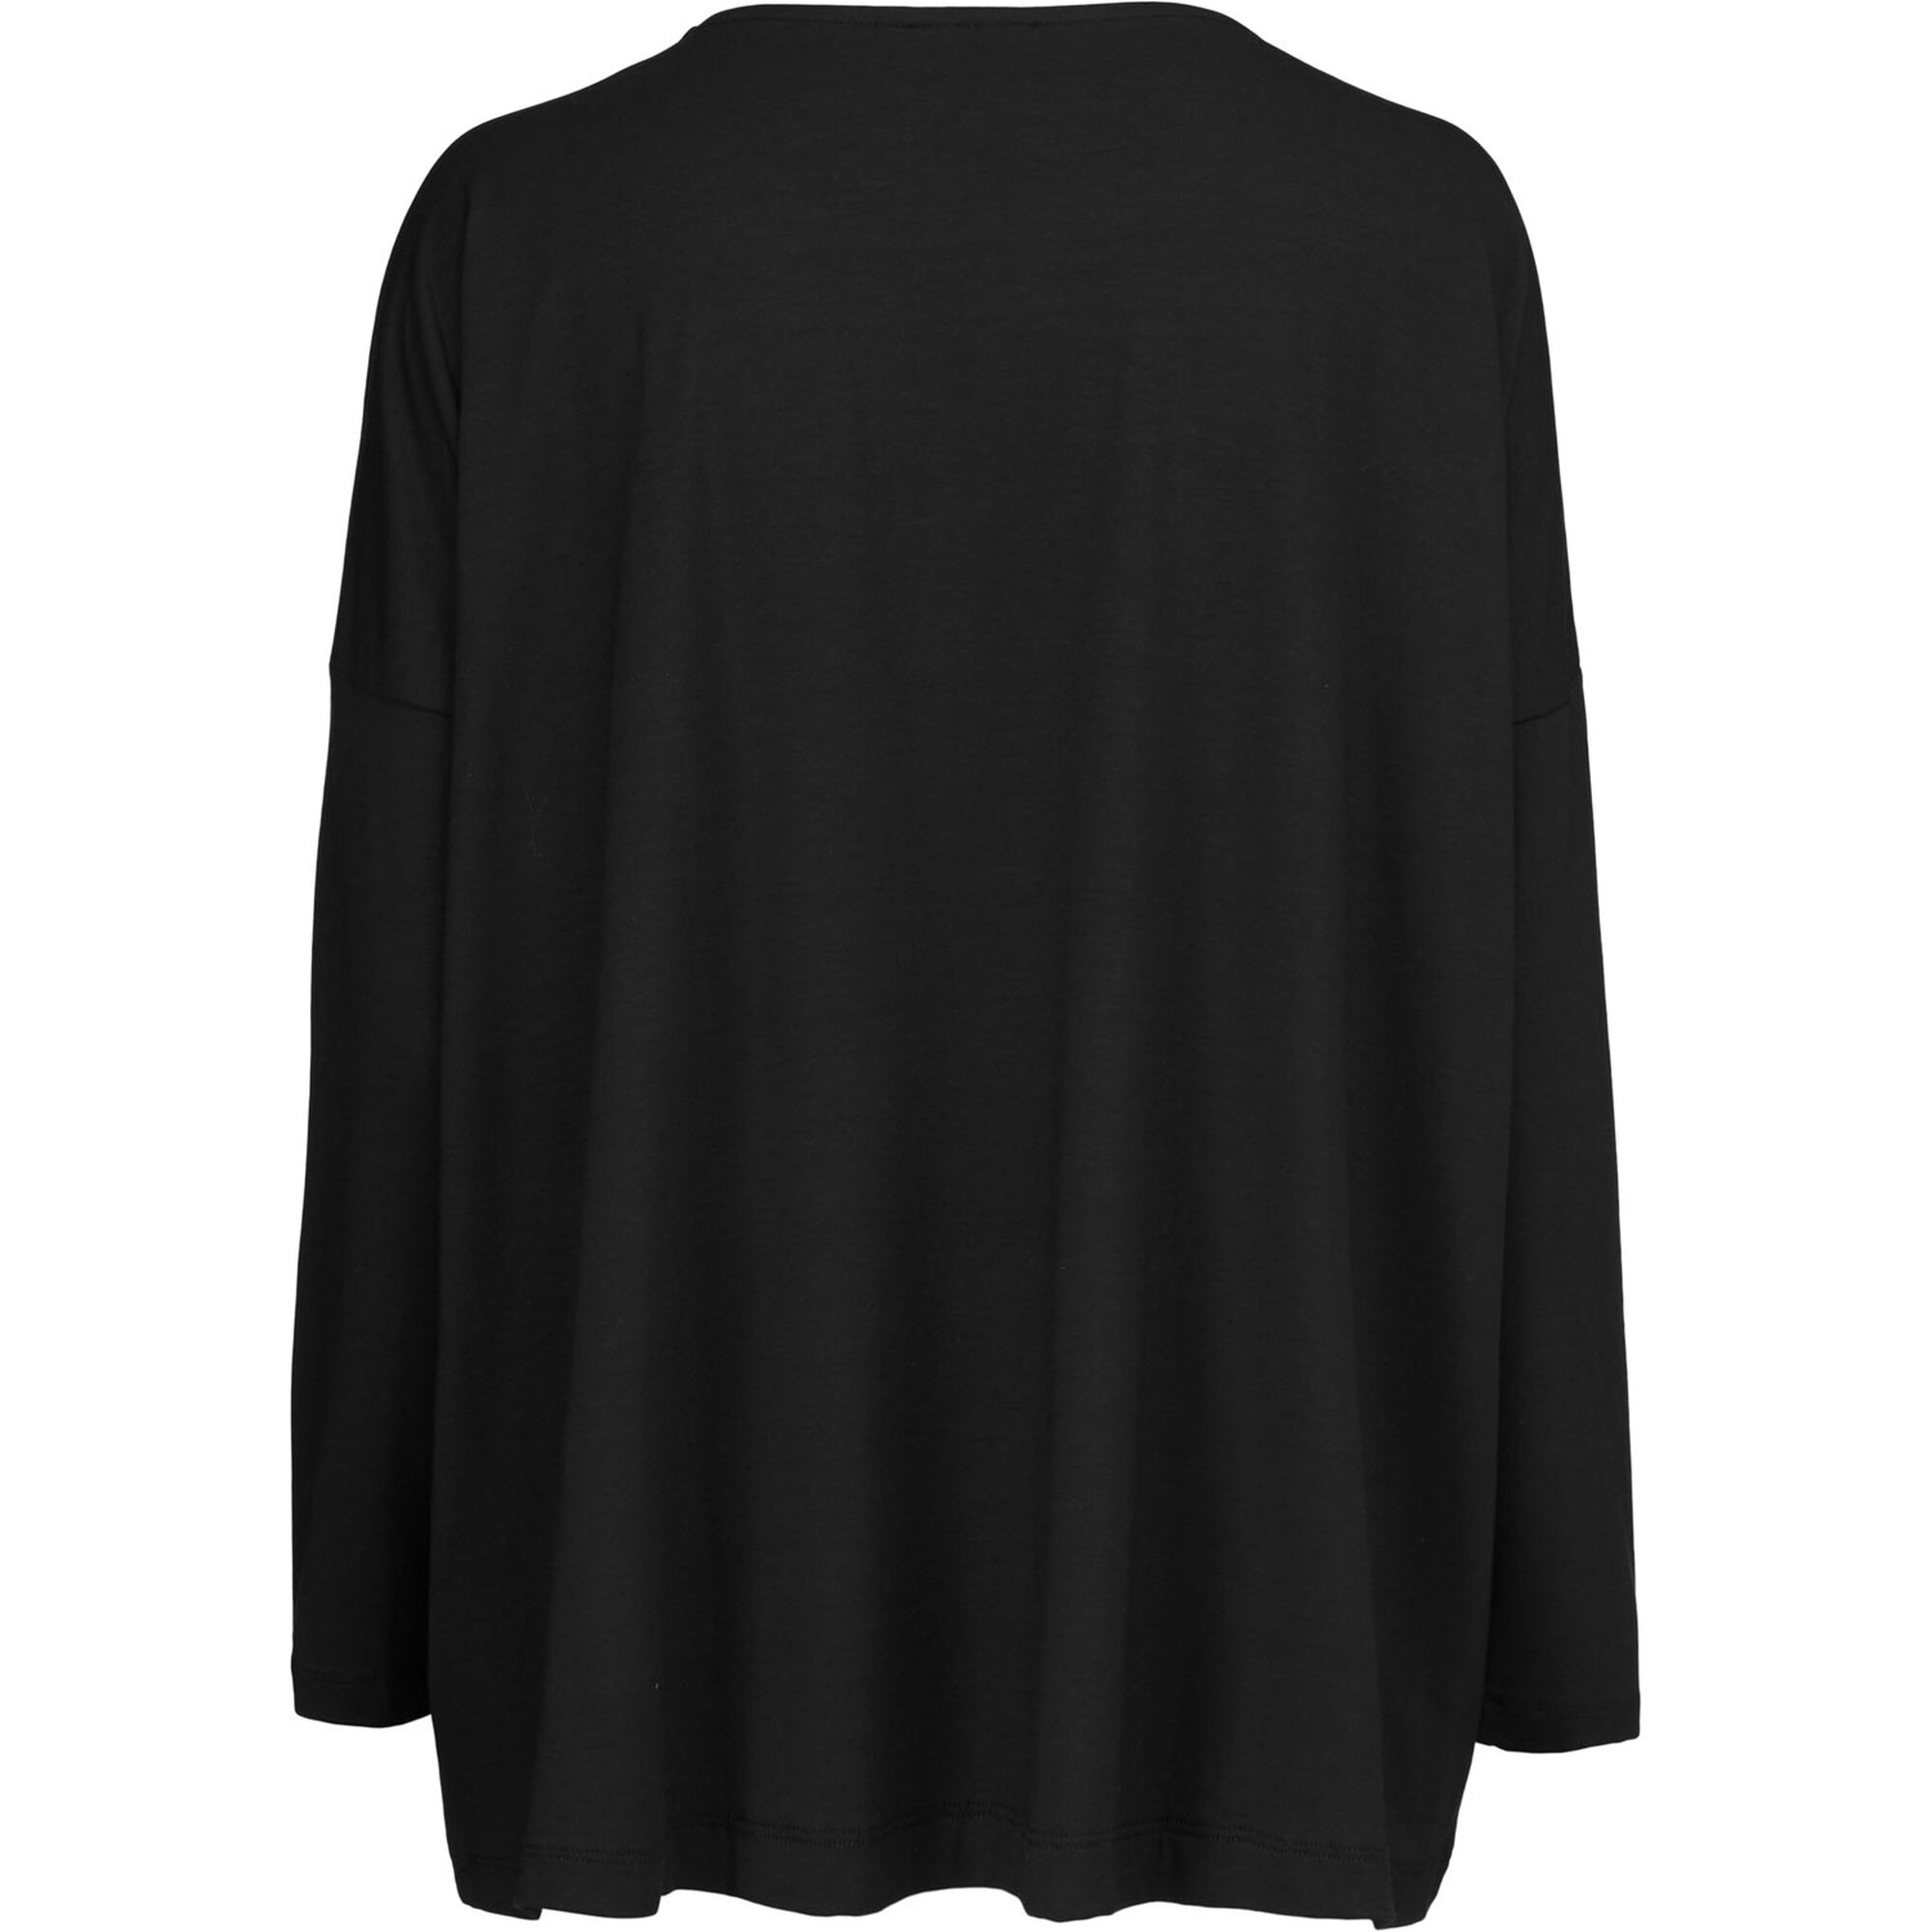 BABUA TOP, Black, hi-res